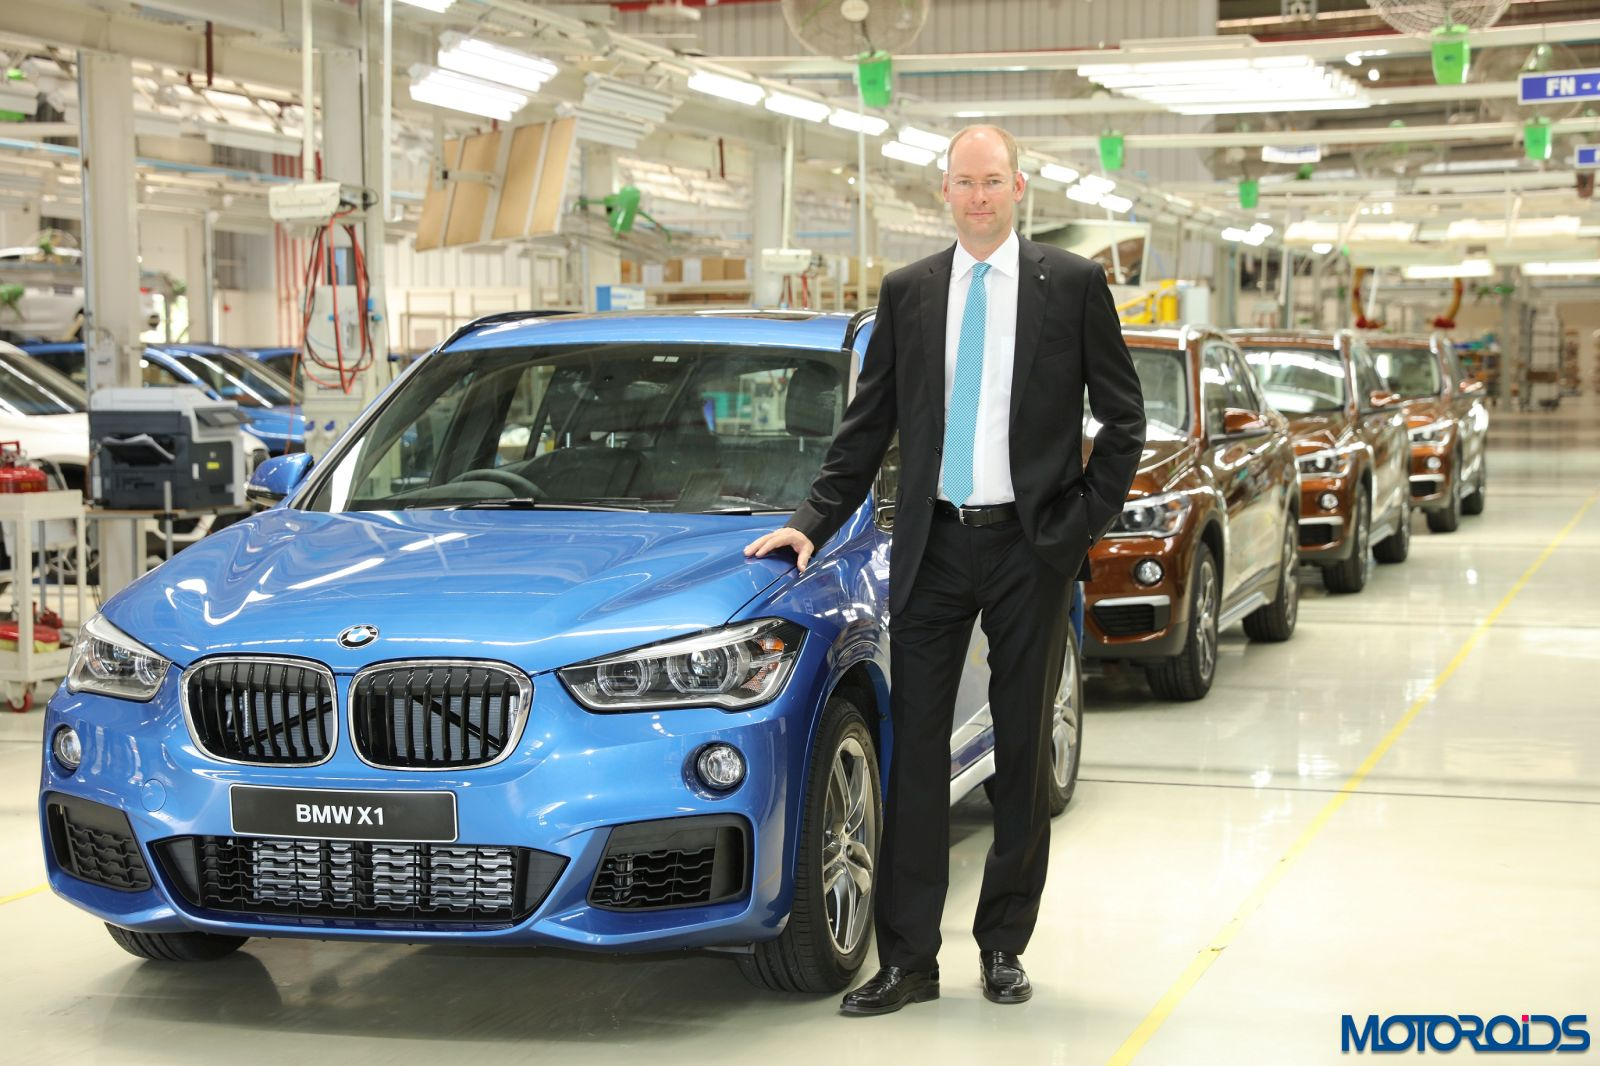 2016 Bmw X1 Rolls Out From The Company S Chennai Plant Motoroids